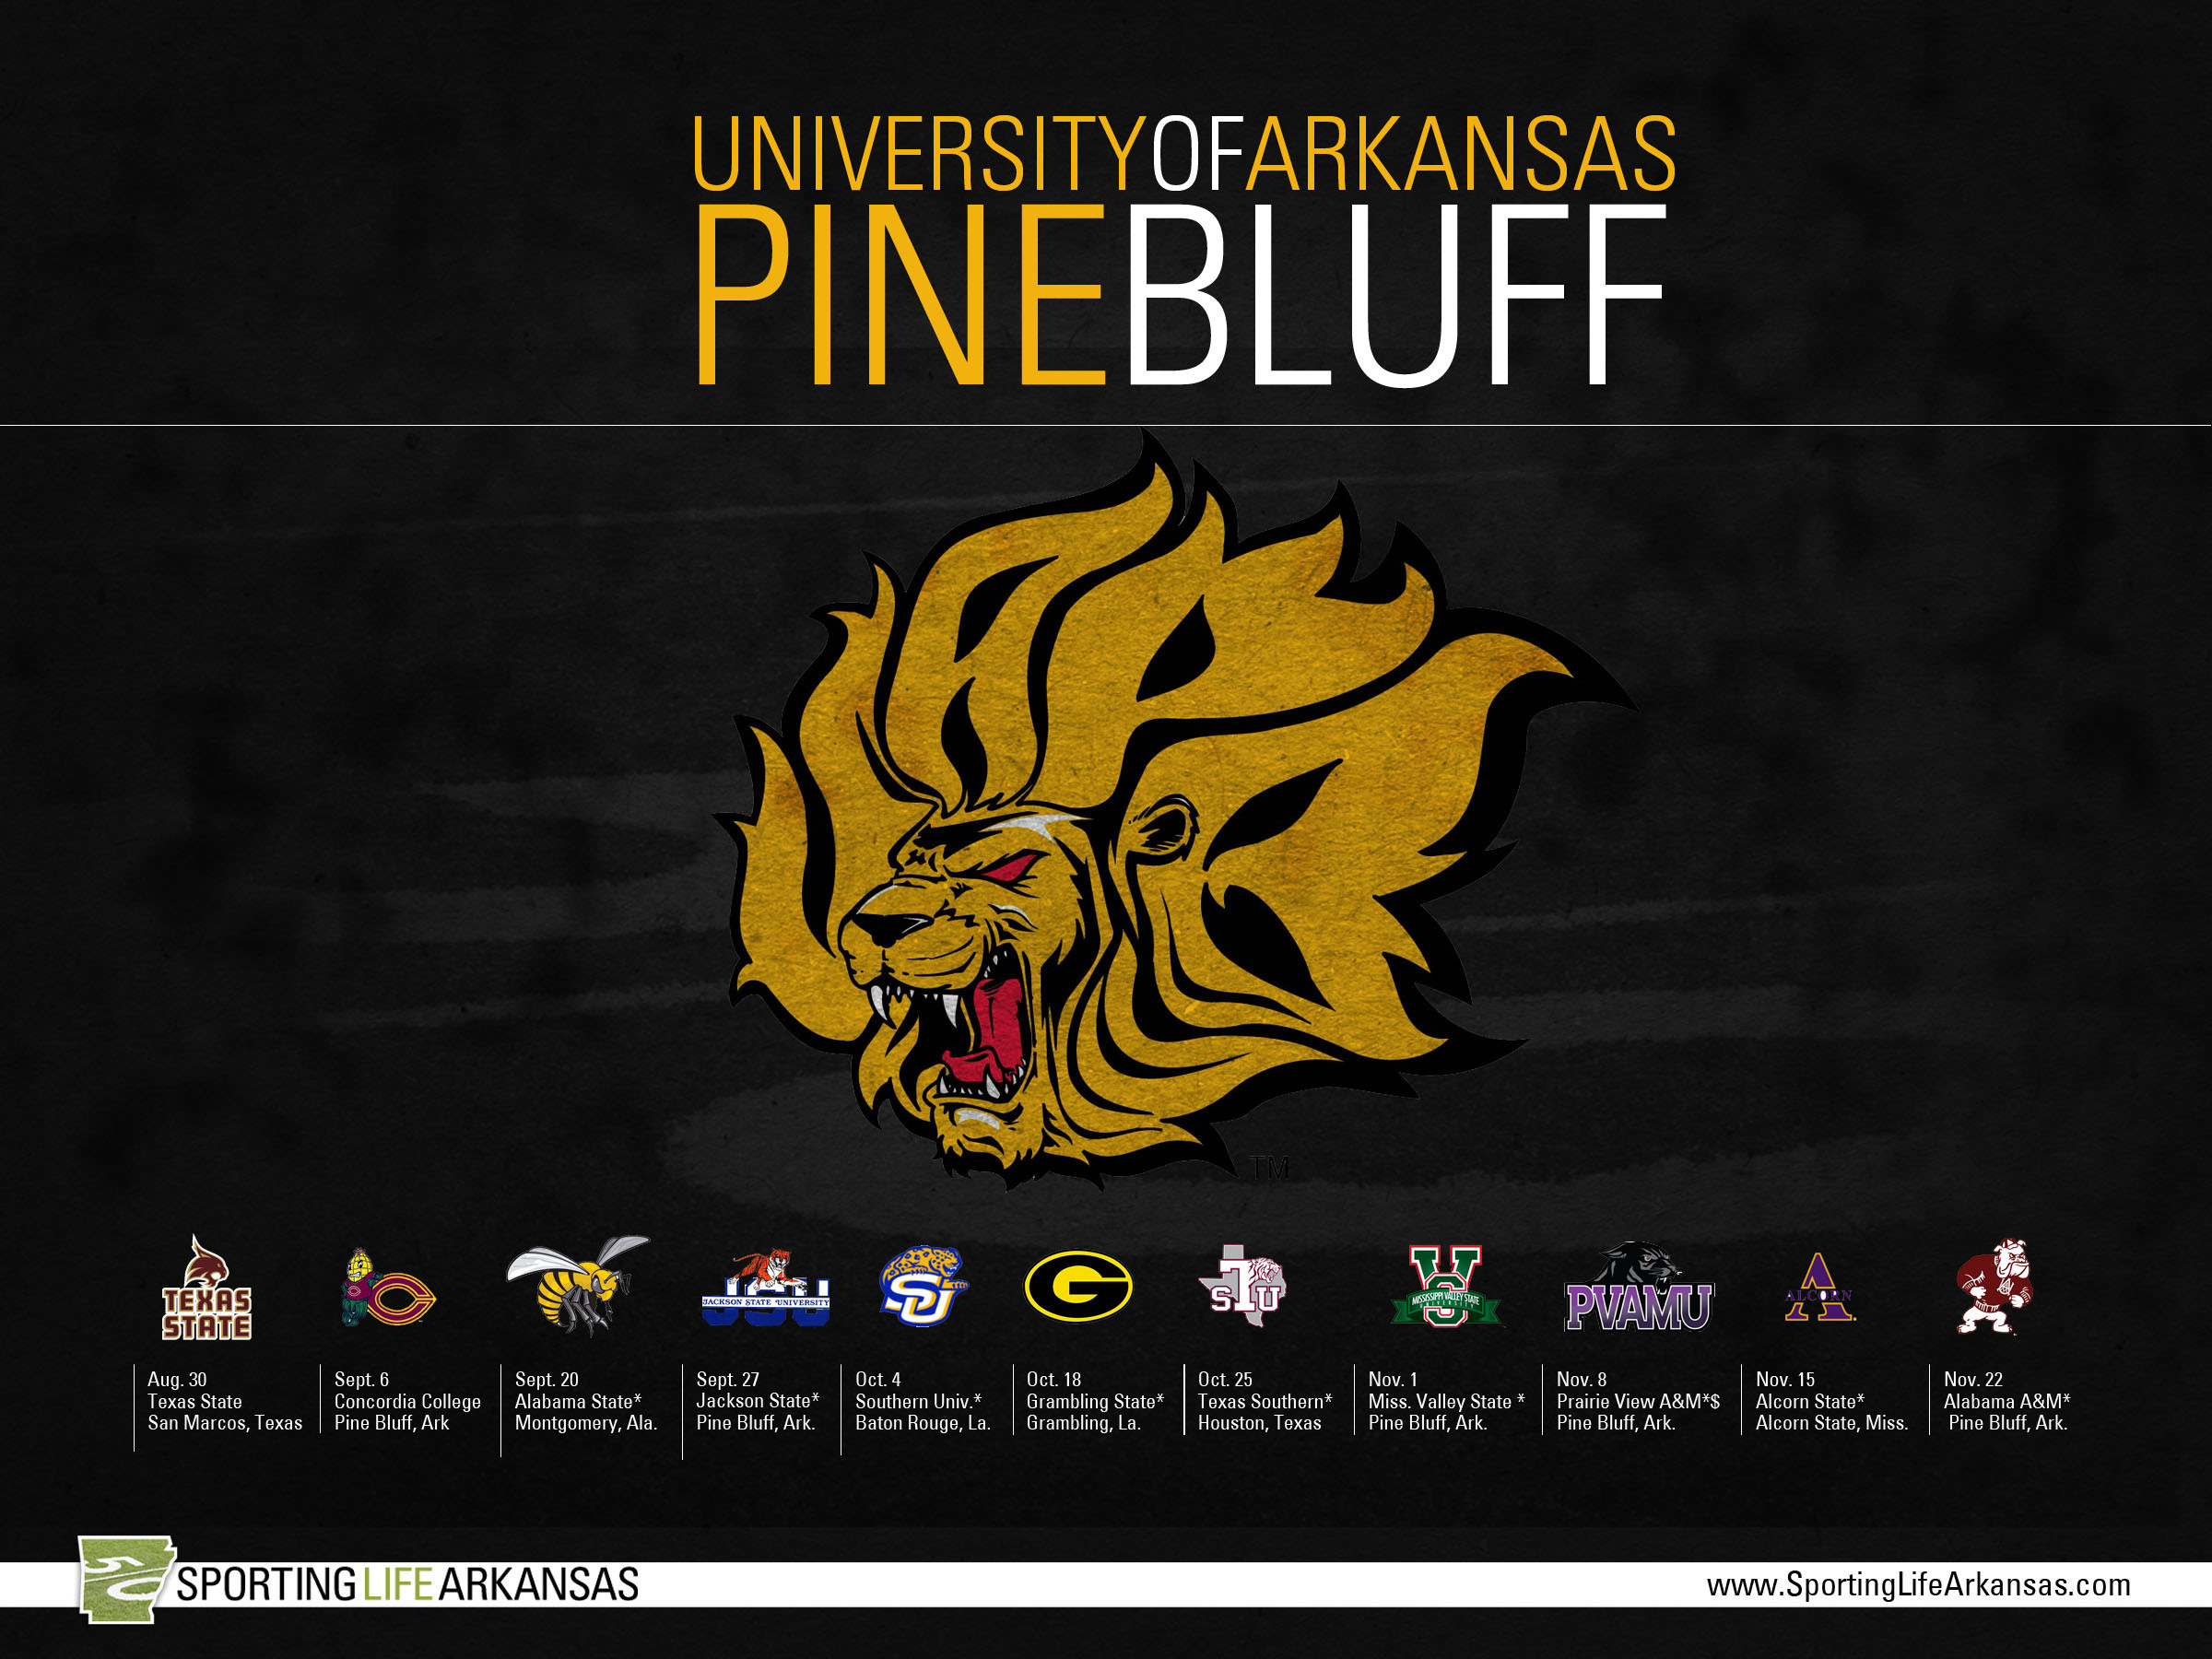 pine bluff single hispanic girls Pine bluff high school is a comprehensive public high school in pine bluff,  arkansas, united states it is the largest of four public high schools in the city and  jefferson county established in 1868, the school's interscholastic sports  programs are one of  the girls squad has won six state championships  between 1981 and 2002.